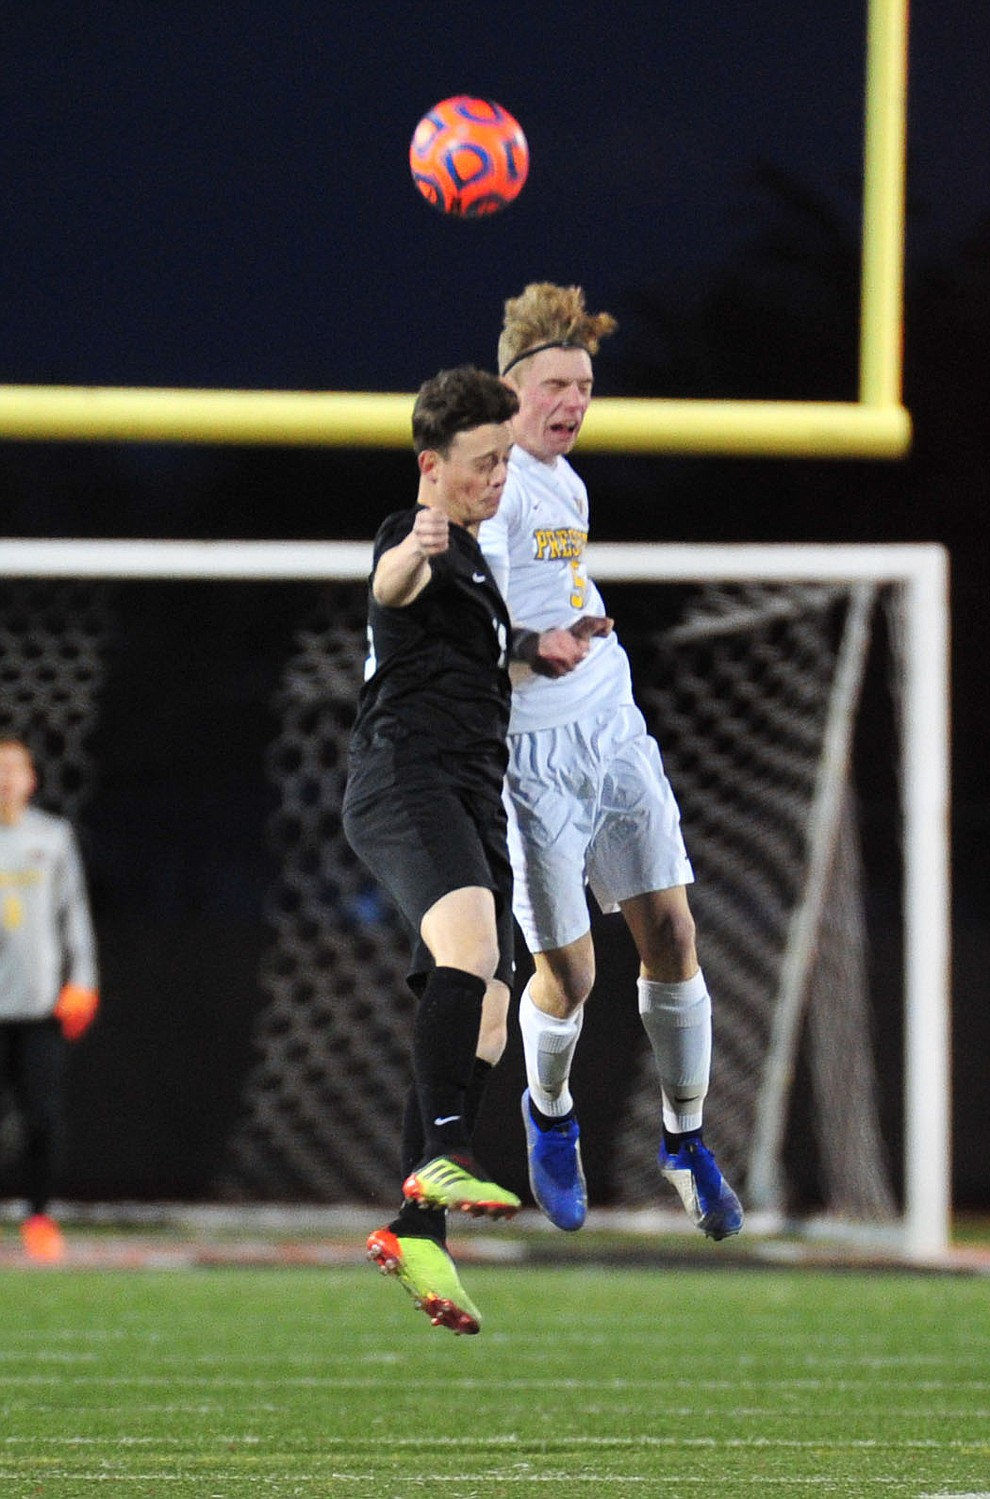 Prescott's Mathew Kaitschuck heads the ball as the Badgers take on the Salpointe Catholic Lancers in the Arizona Interscholastic Association 4A State Soccer Championship Tuesday, February 19, 2019 at Williams Field High School in Gilbert. (Les Stukenberg/Courier).